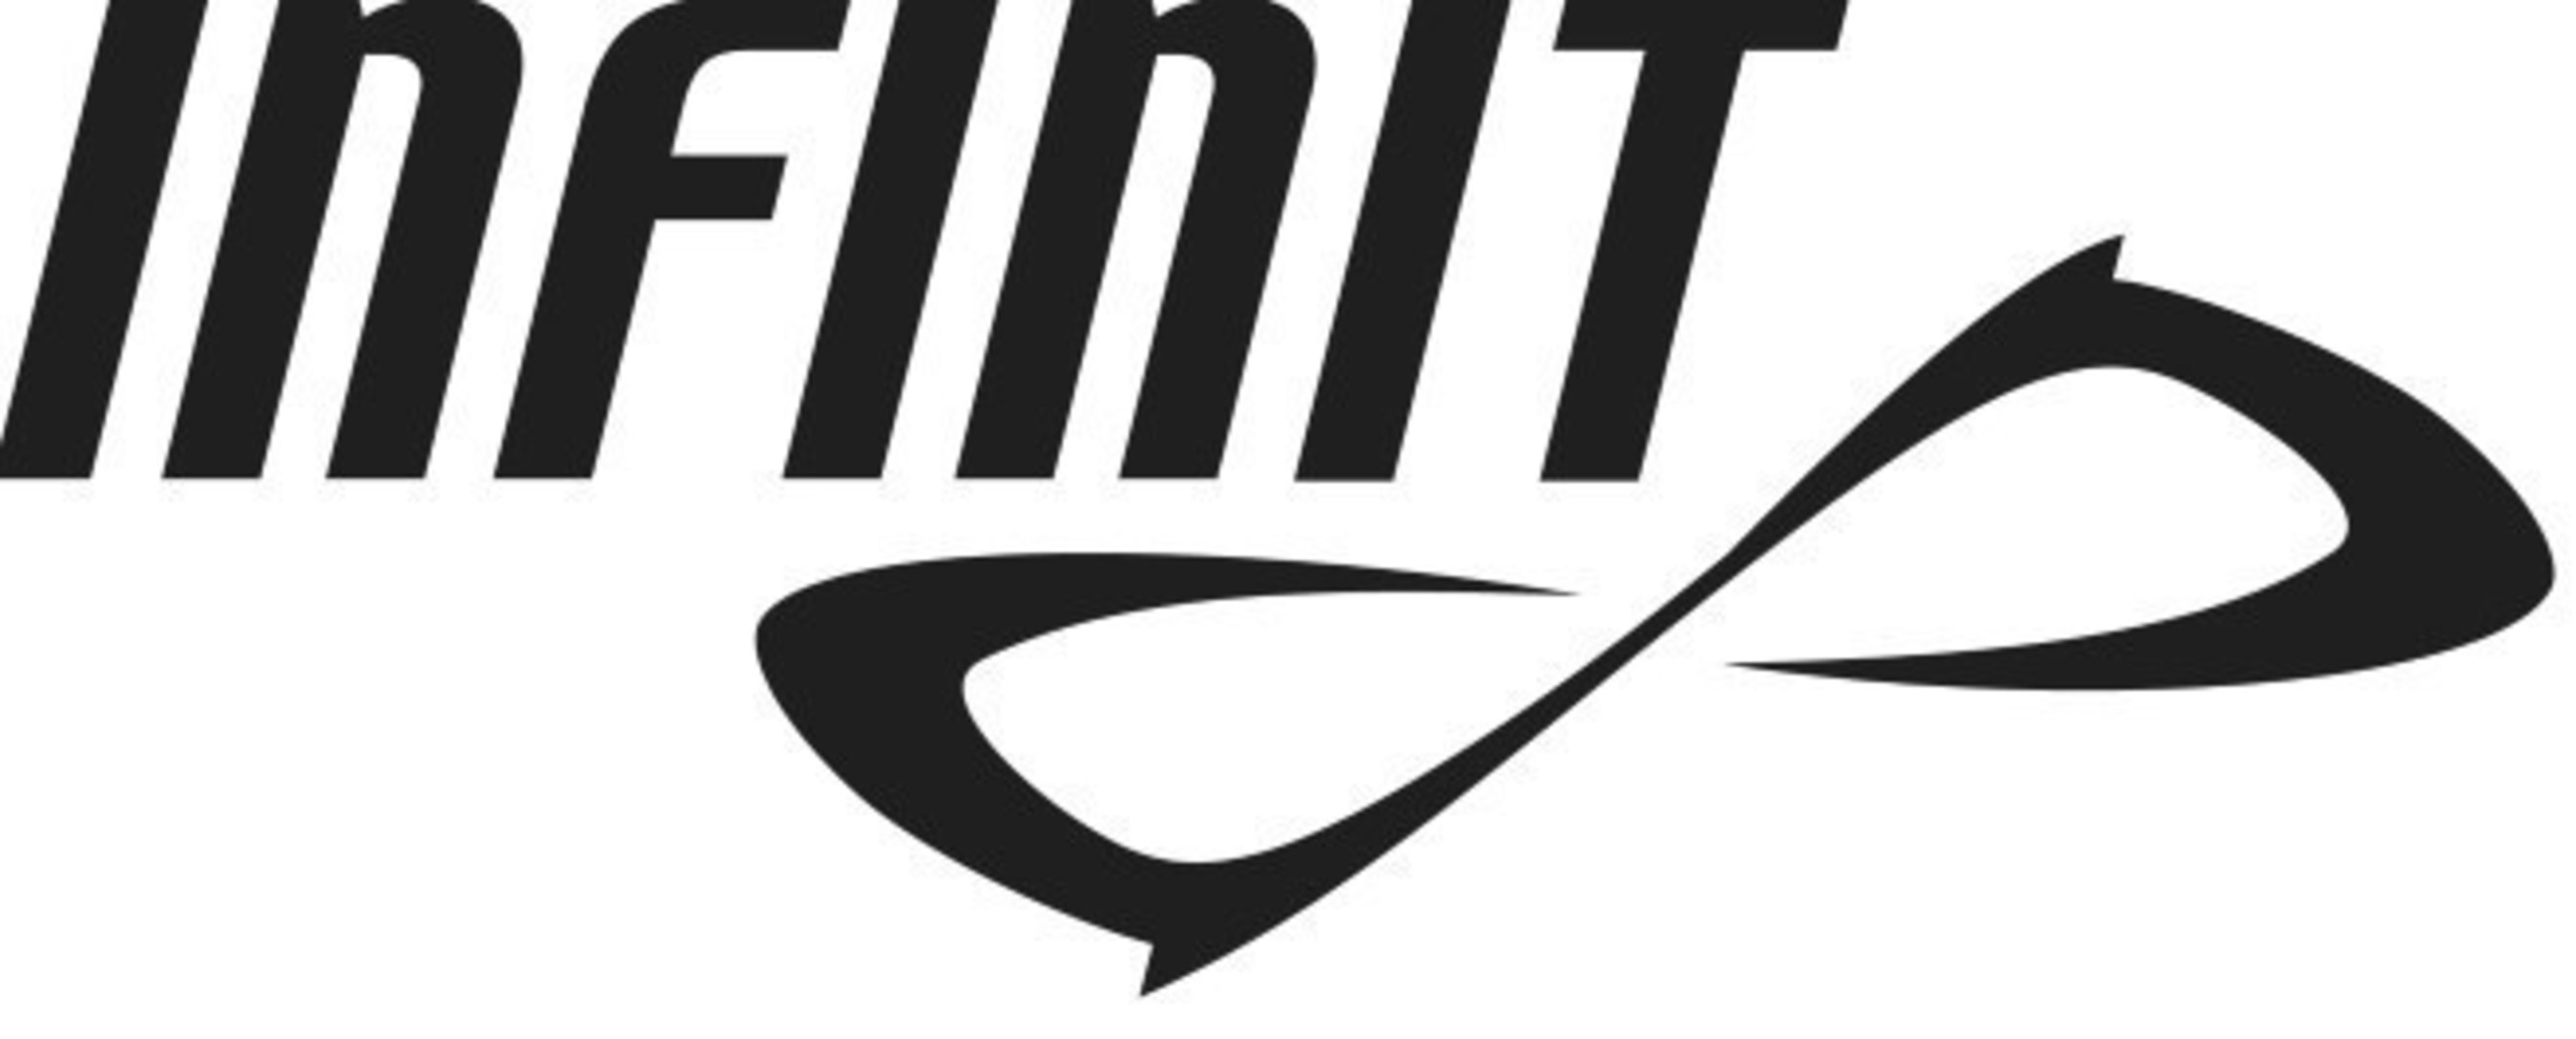 Sports nutrition leader INFINIT Nutrition announces the release of the latest addition to its line of post-workout recovery products, :RAW, an all-natural protein mix designed for optimal muscle growth and restoration.